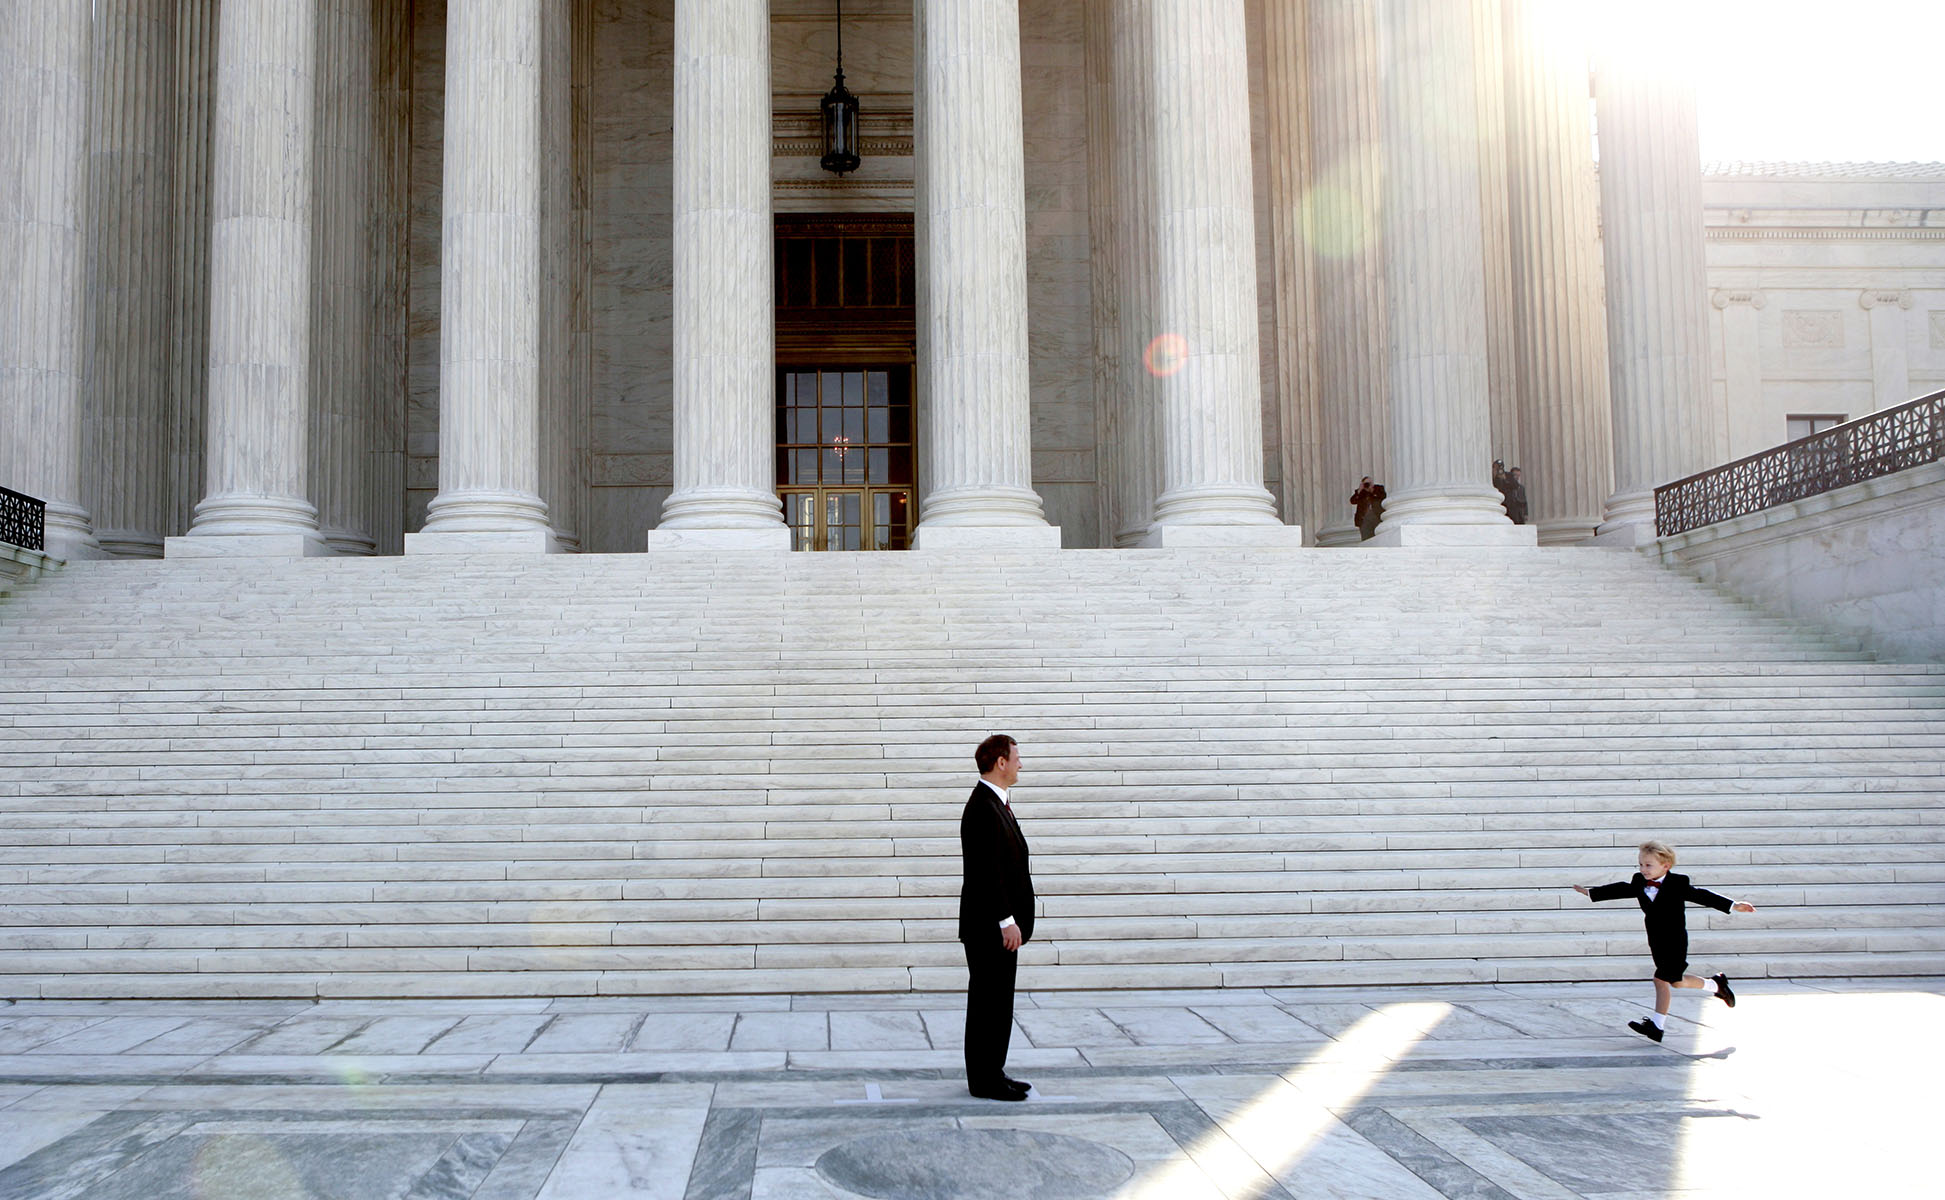 U.S. Chief Justice John Roberts (L) reaches for his son, Jack, 4, on the steps of the Supreme Court after his investiture ceremony inside the Supreme Court in Washington D.C. October 3, 2005.Photo by Brooks Kraft/Corbis